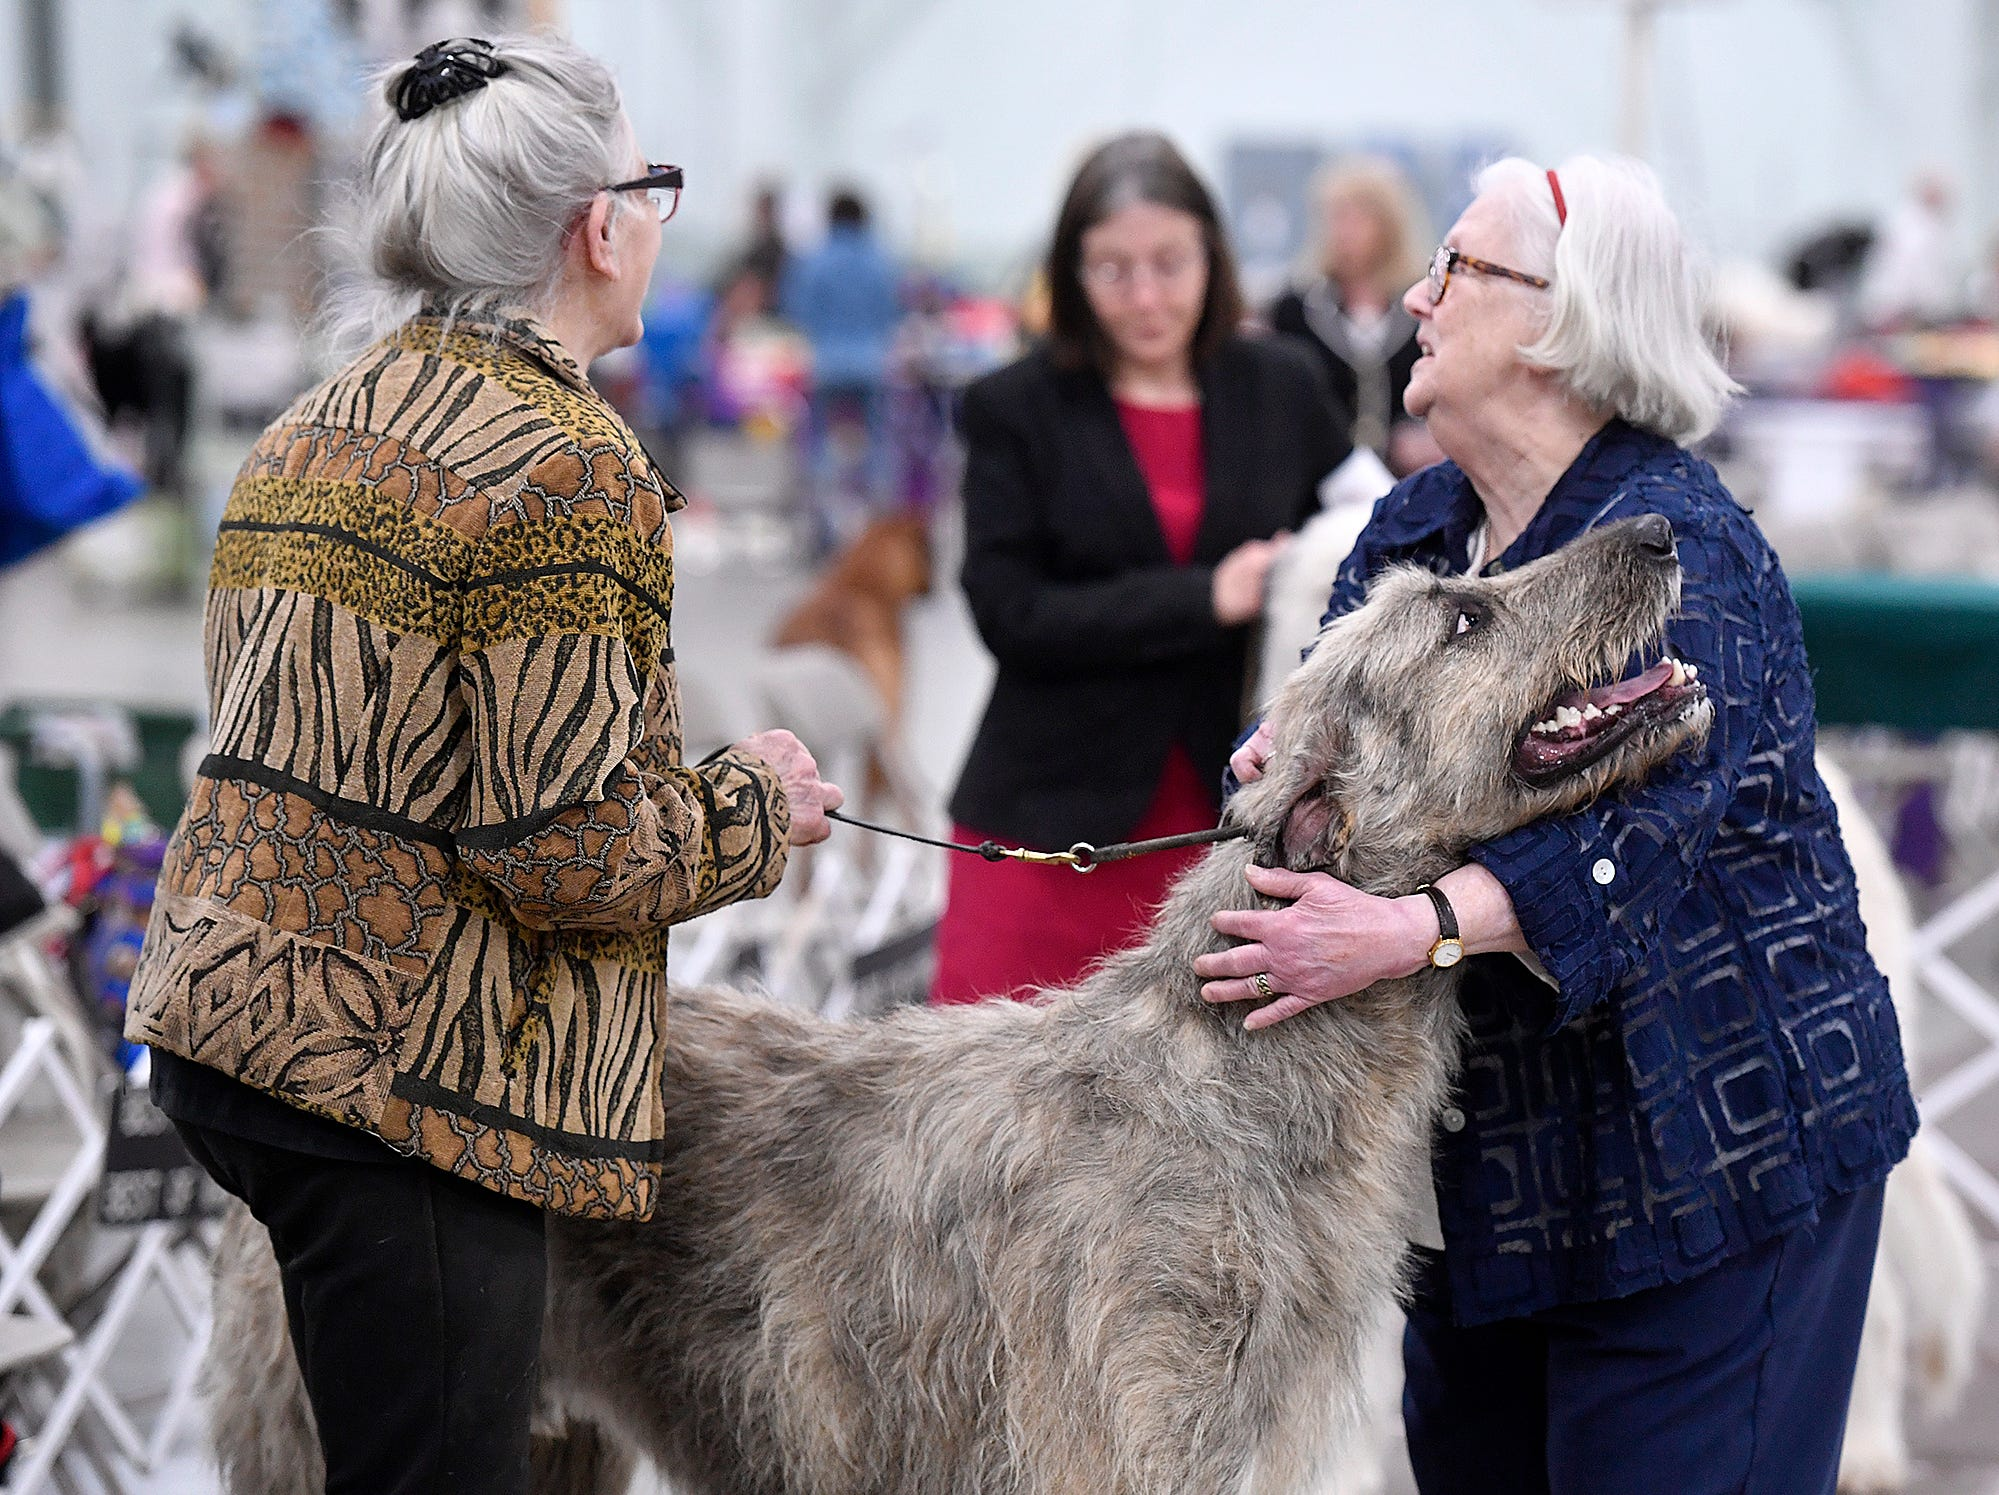 Judge Pricilla Gbosch, right, gets a hug from Irish wolfhound An Awesome Wonder shown by Alice Kneavel, left, of Airville, the annual Celtic Classic Dog Show, Wednesday, March 13, 2018.John A. Pavoncello photo